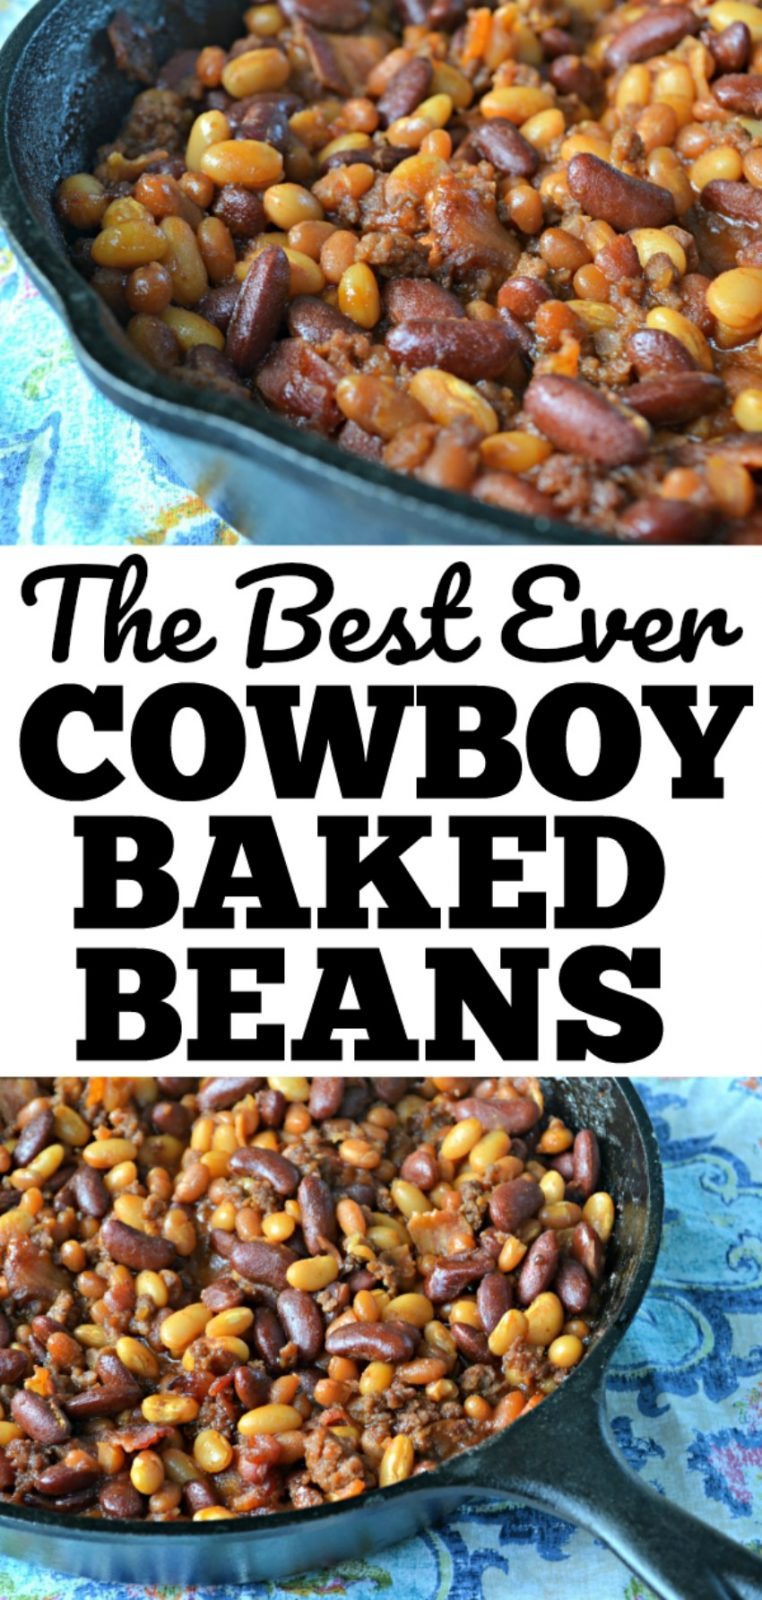 The Best Ever Cowboy Baked Beans recipe